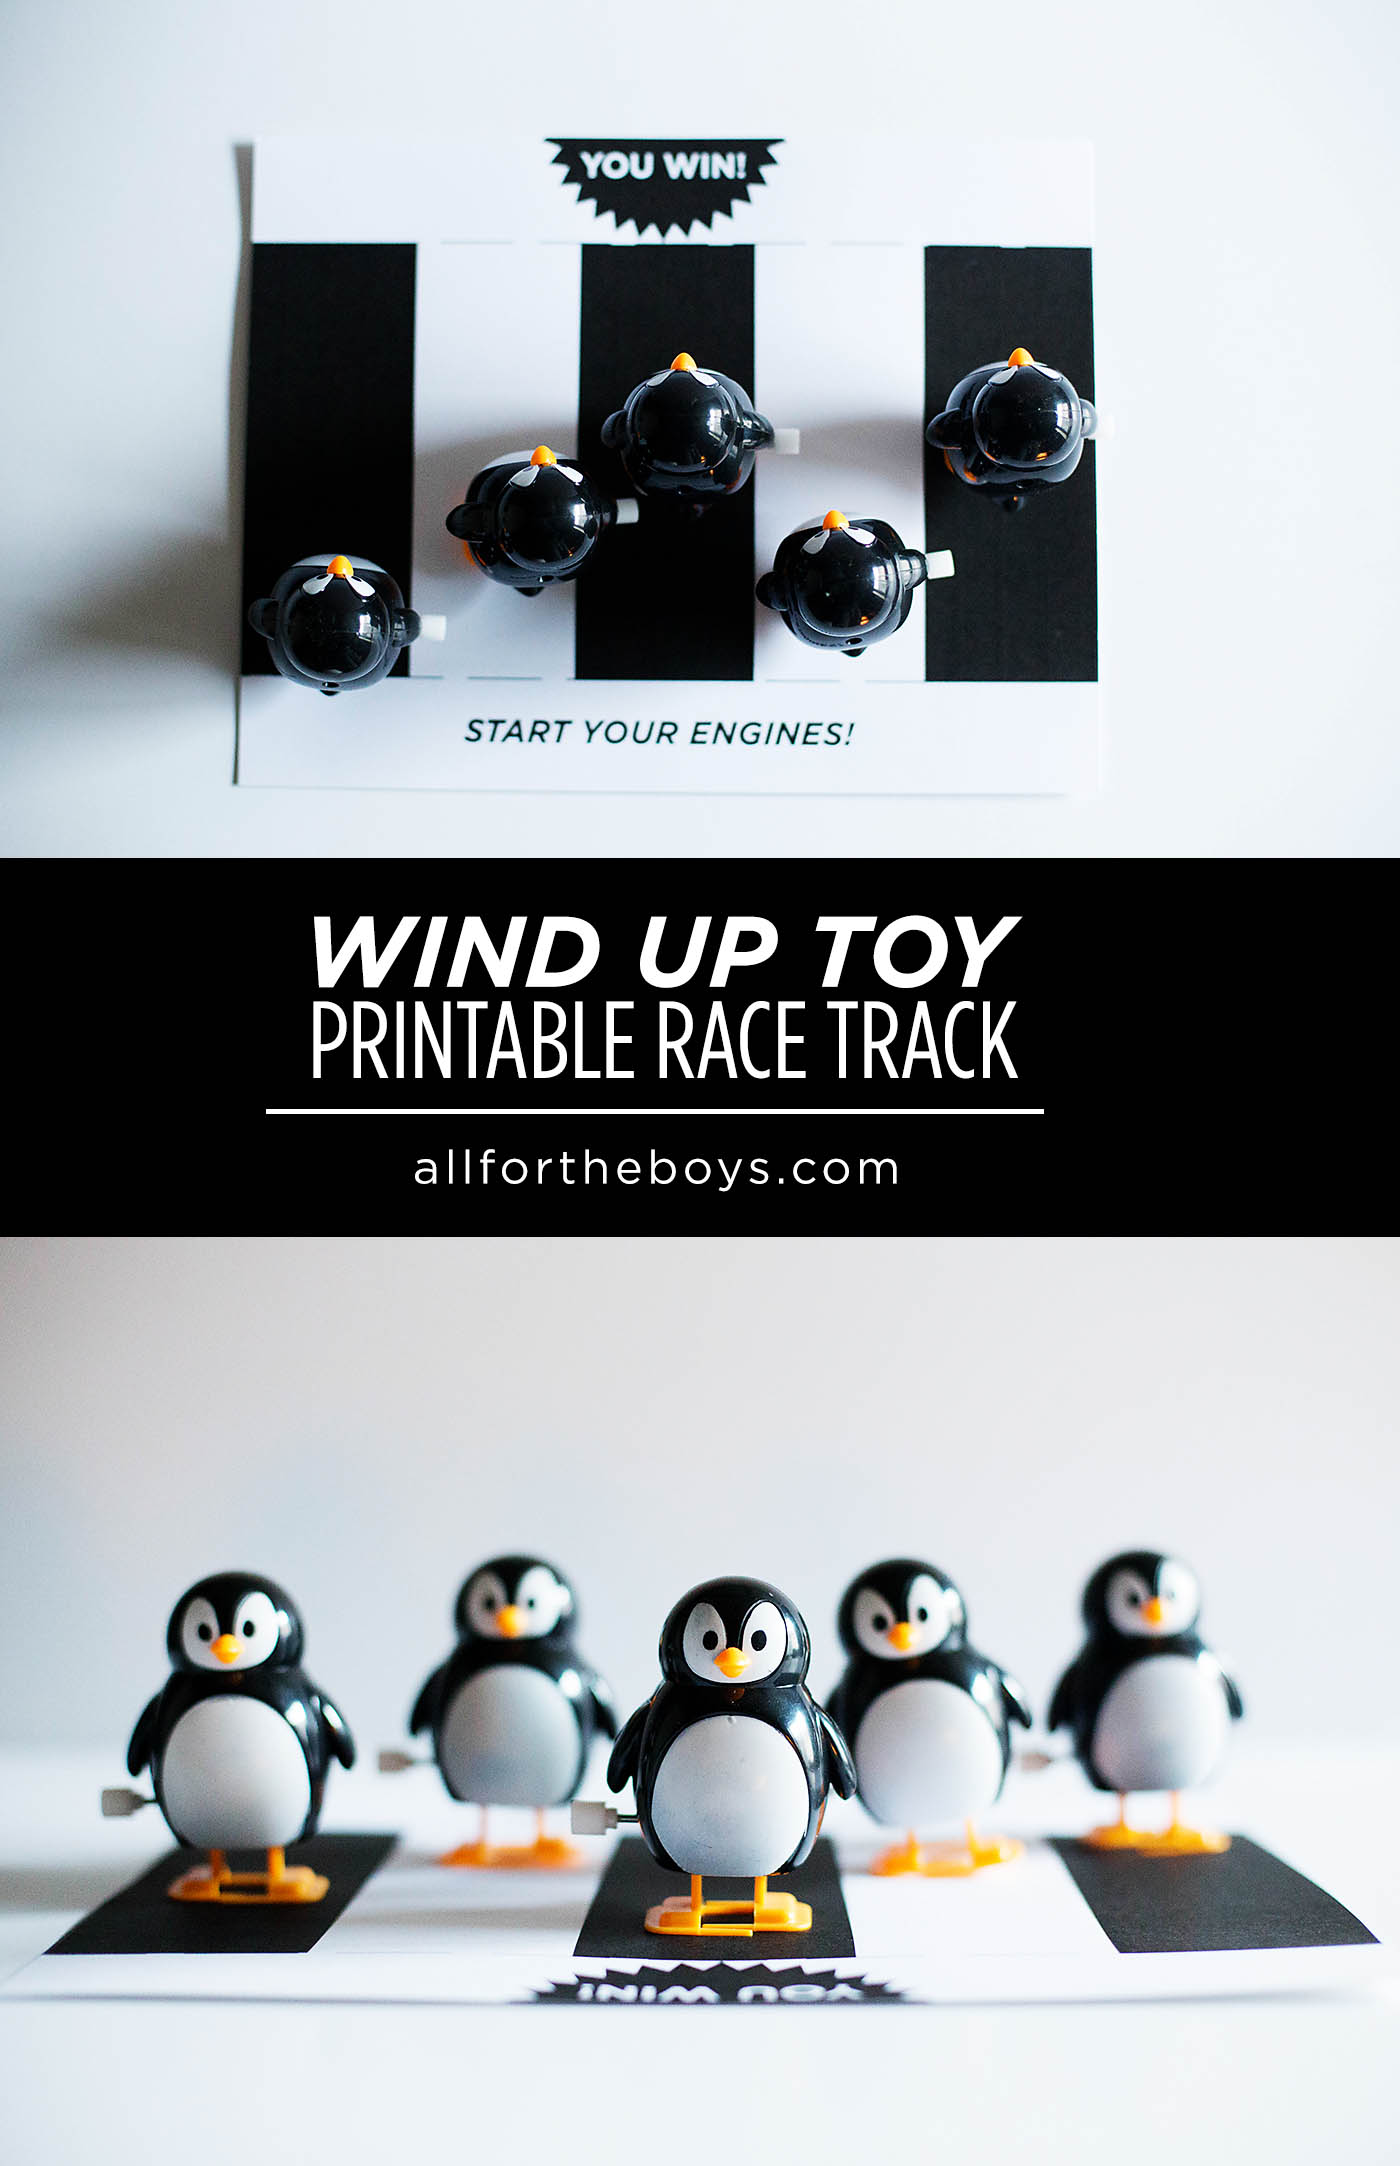 Wind up toy printable race track - what a fun, easy game for parties!